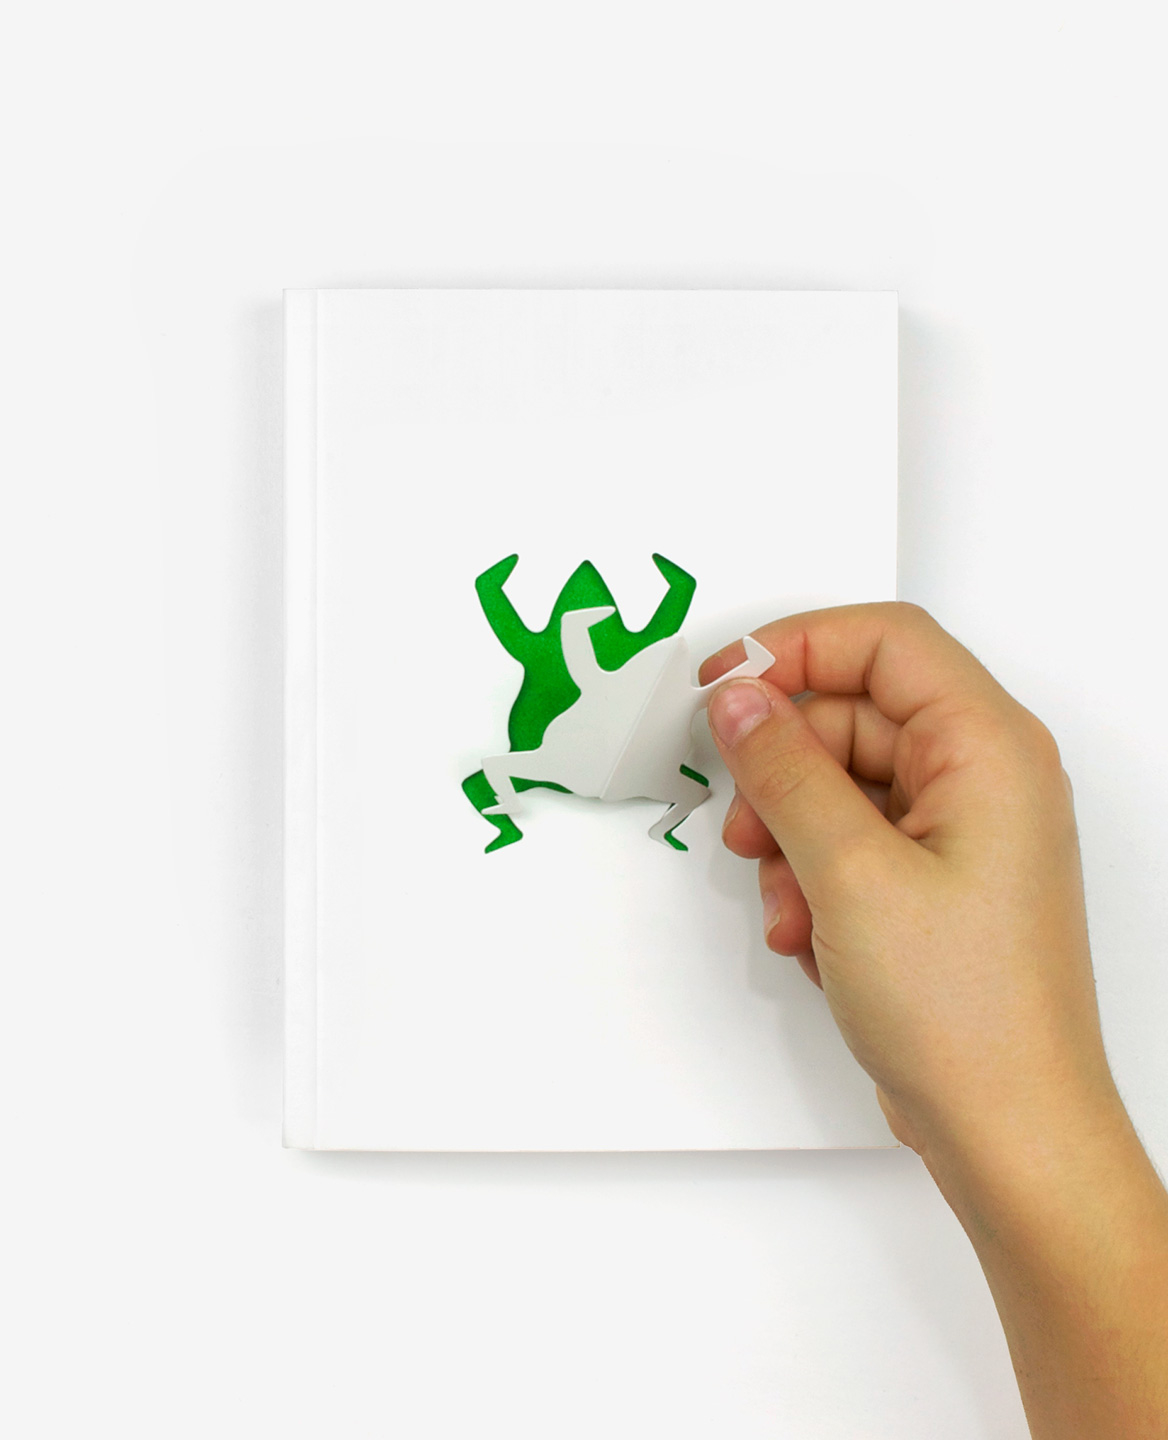 A child's hand stinging a paper frog from the cover of the book Zoo in my hand by Inkyeong & Sunkyung Kim published by Éditions du livre